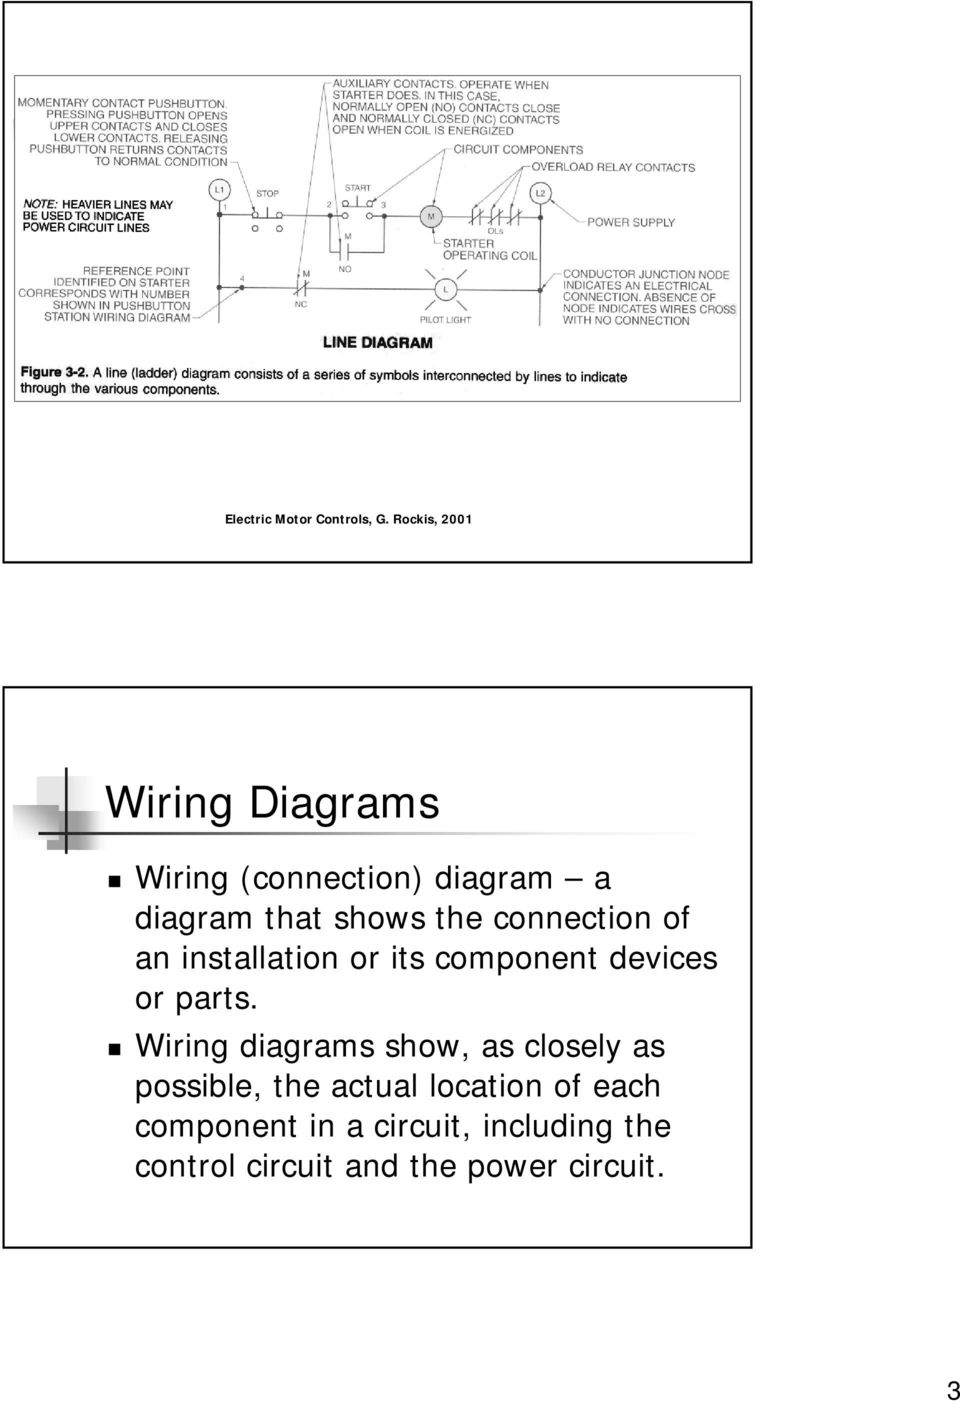 medium resolution of wiring diagrams show as closely as possible the actual location of